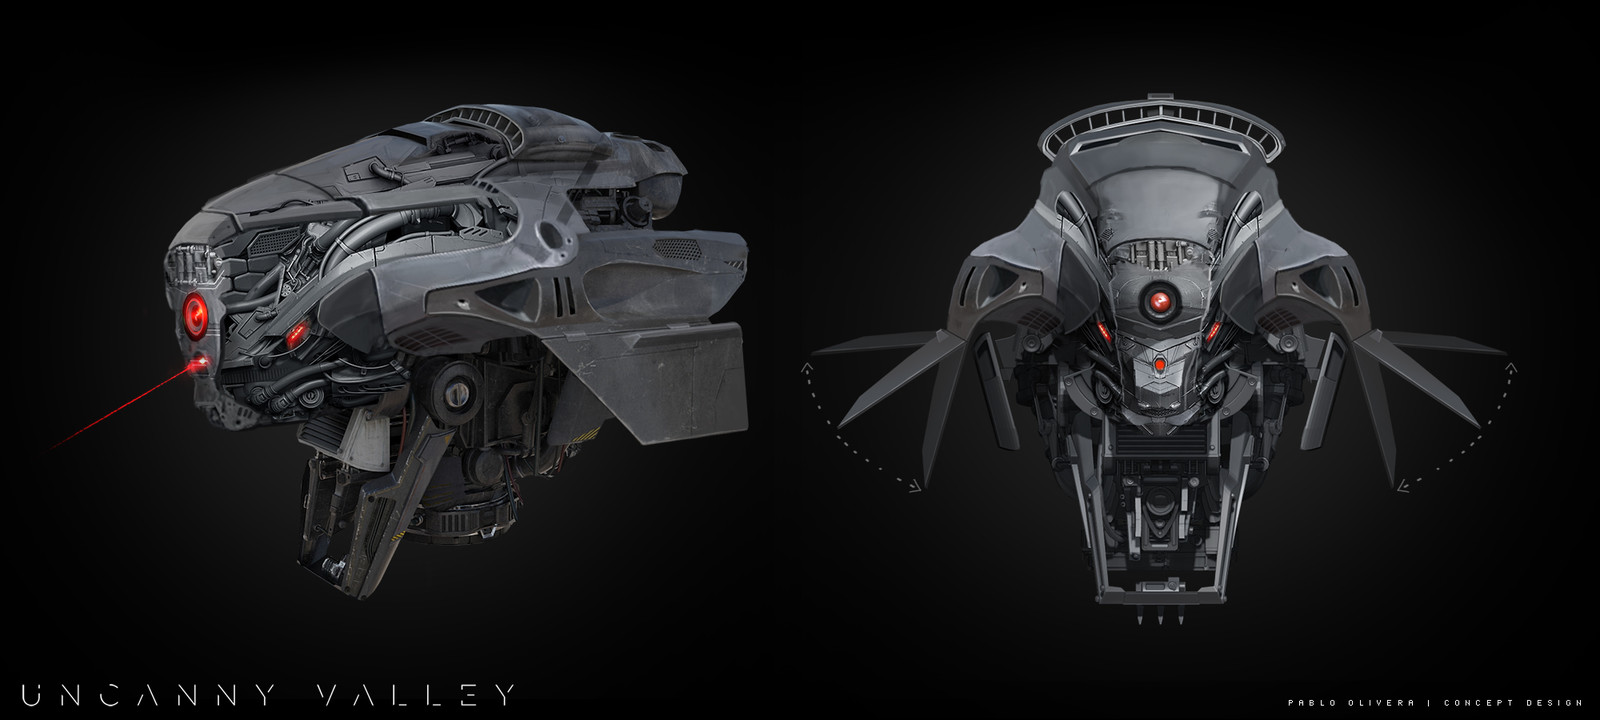 Camera War Drone for Uncanny Valley ( Sci-Fi short film )